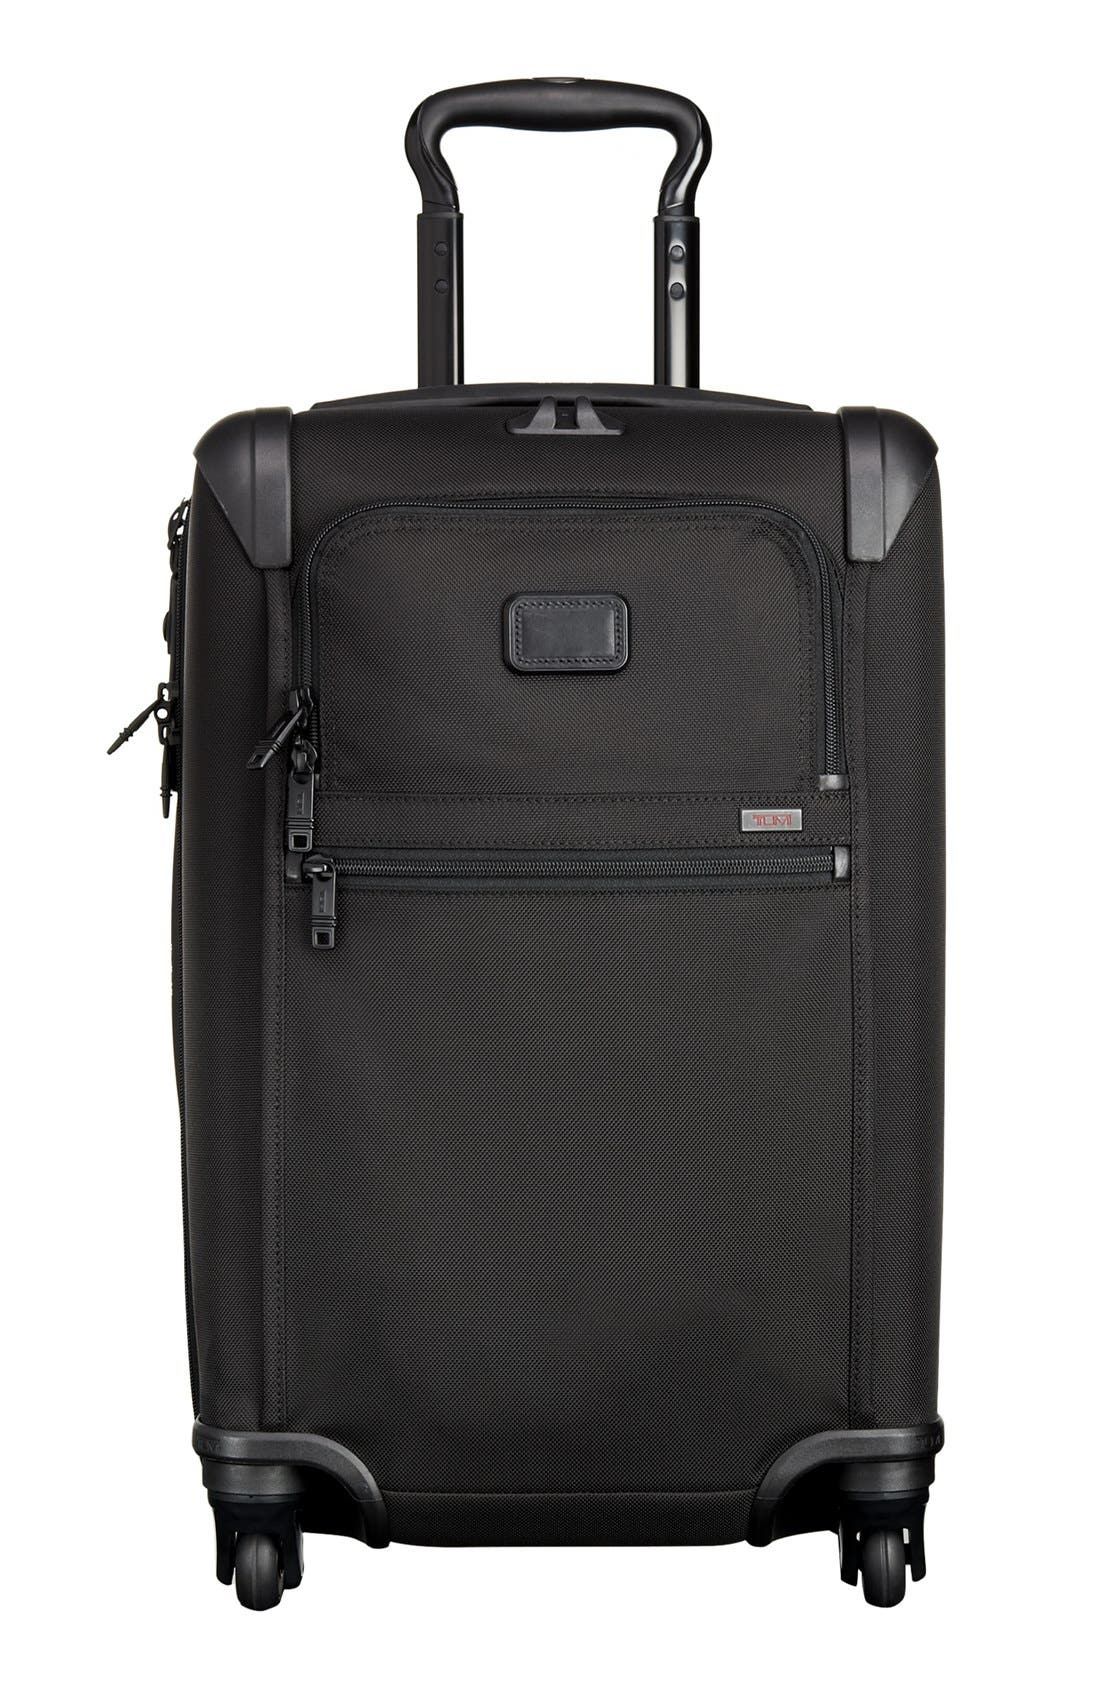 TUMI 'Alpha 2' International Carry-On